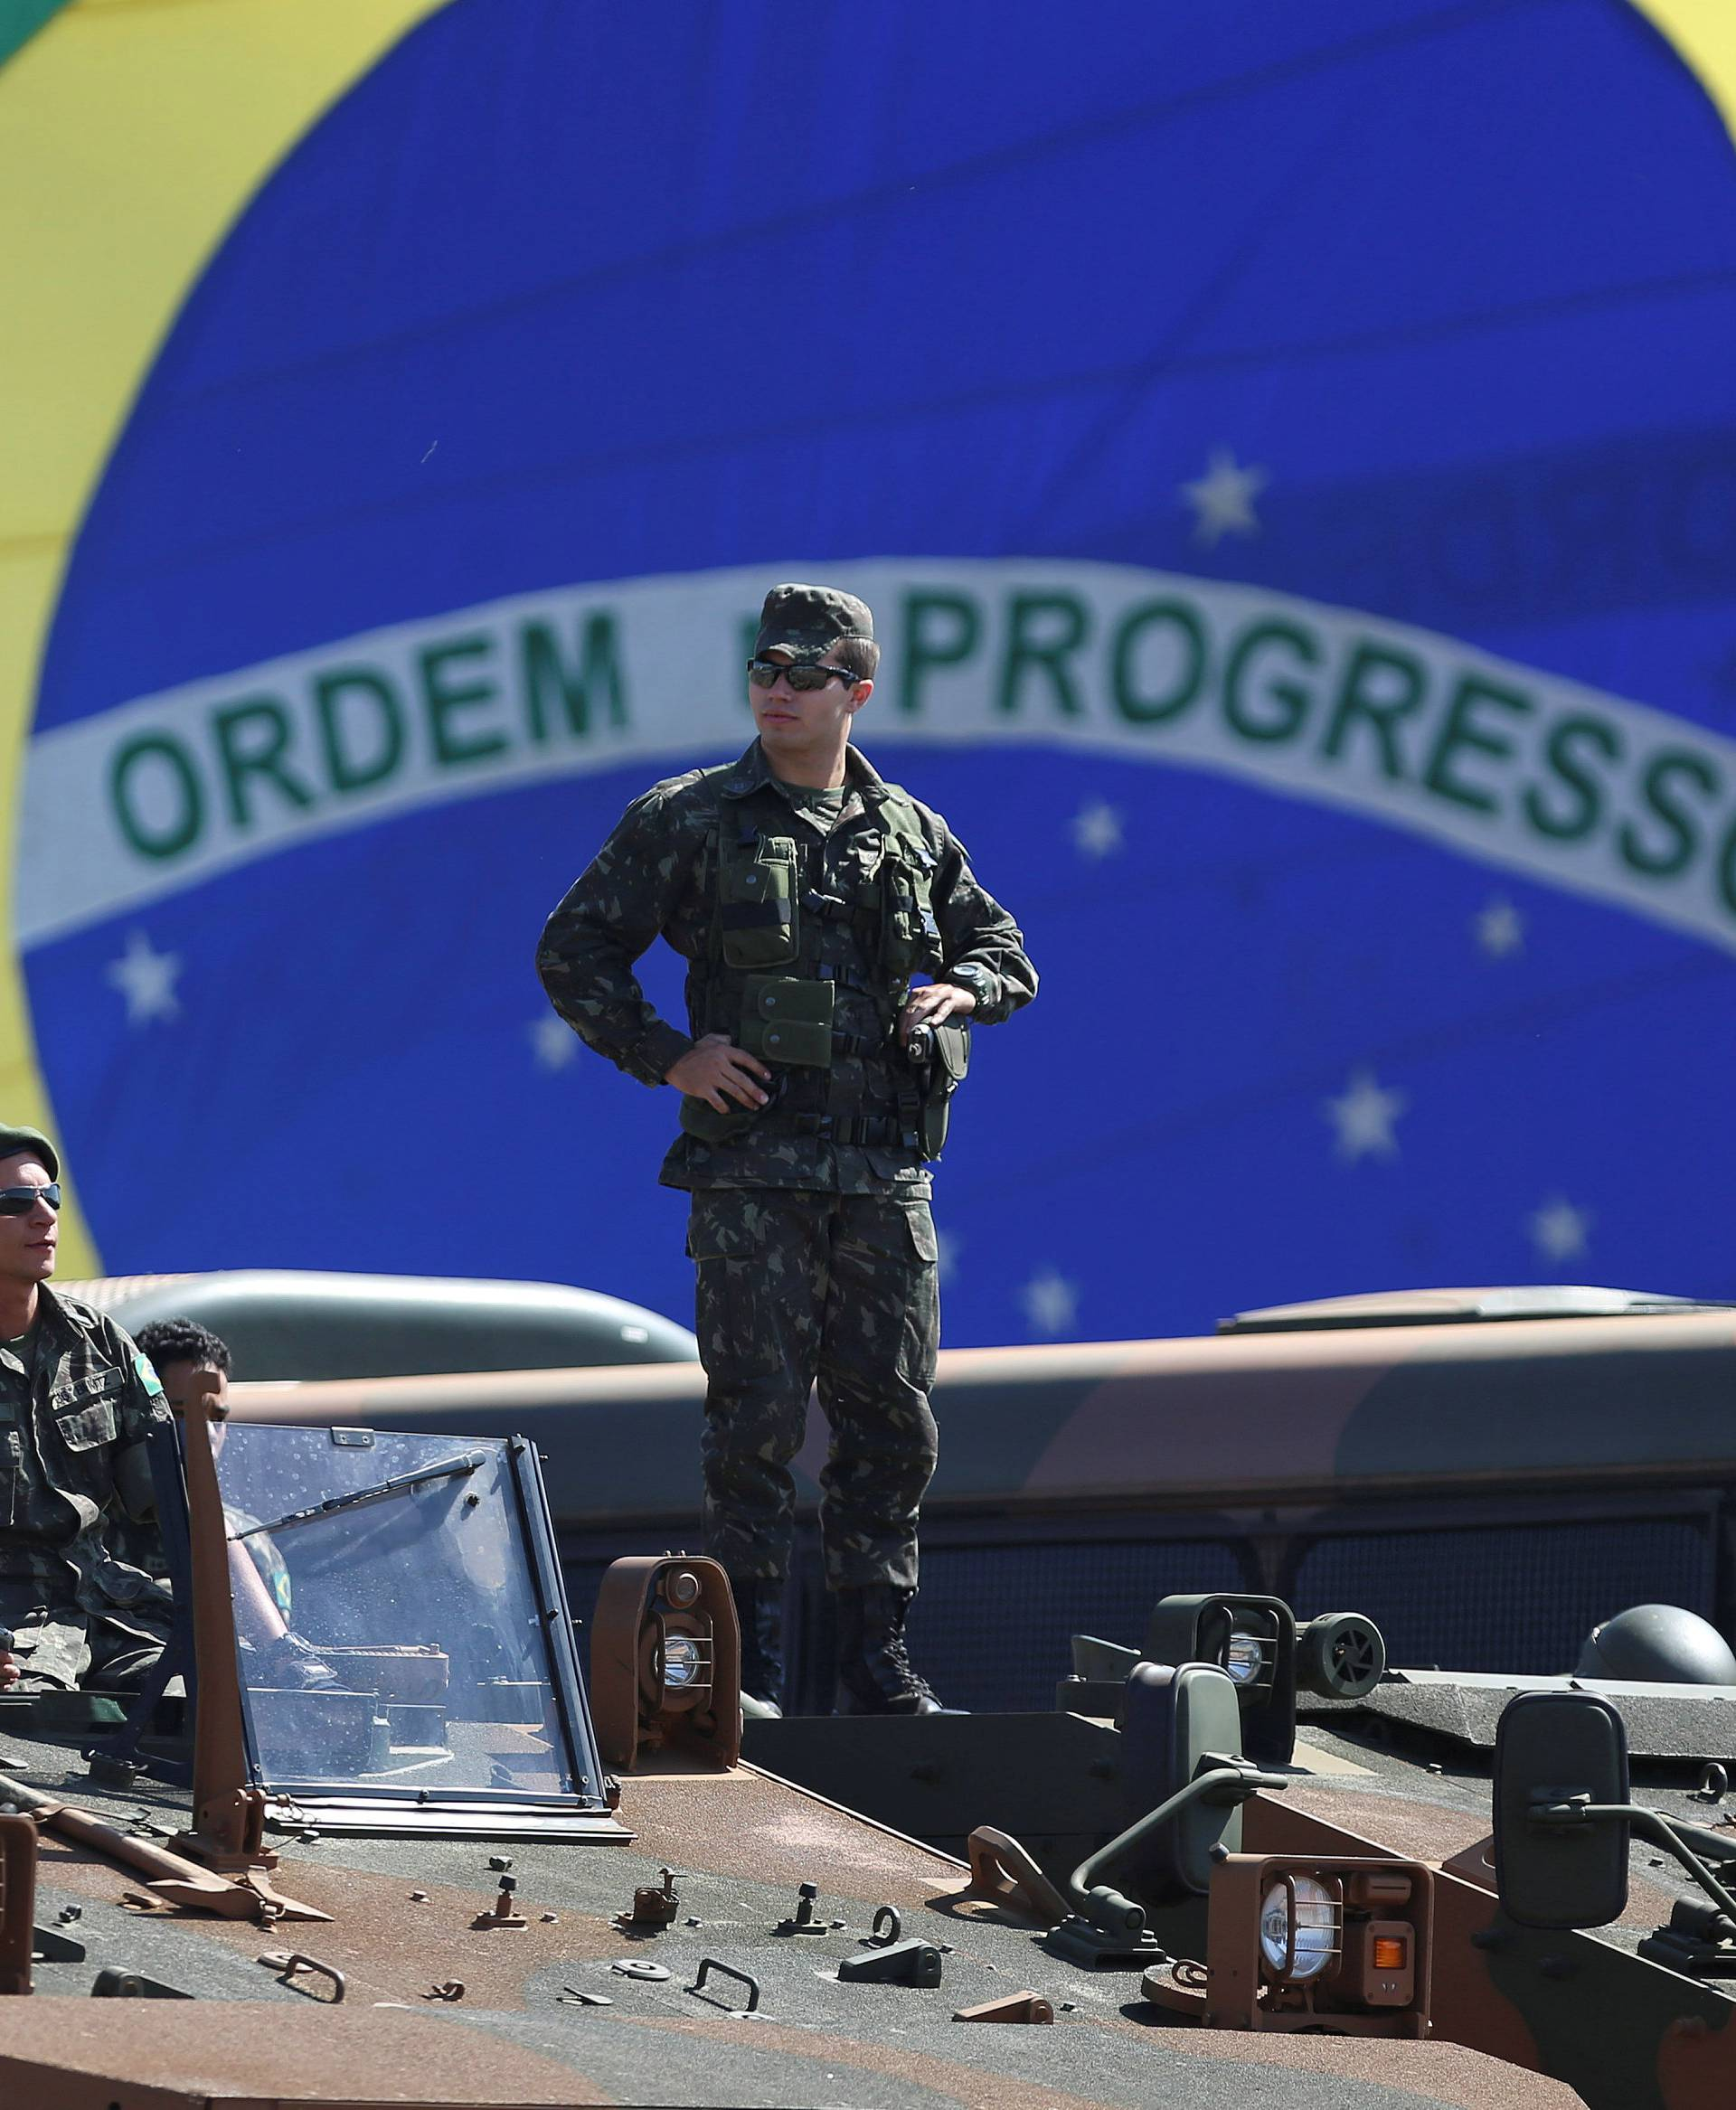 Brazilian police and special military forces are pictured outside the Mane Garrincha Stadium in Brasilia